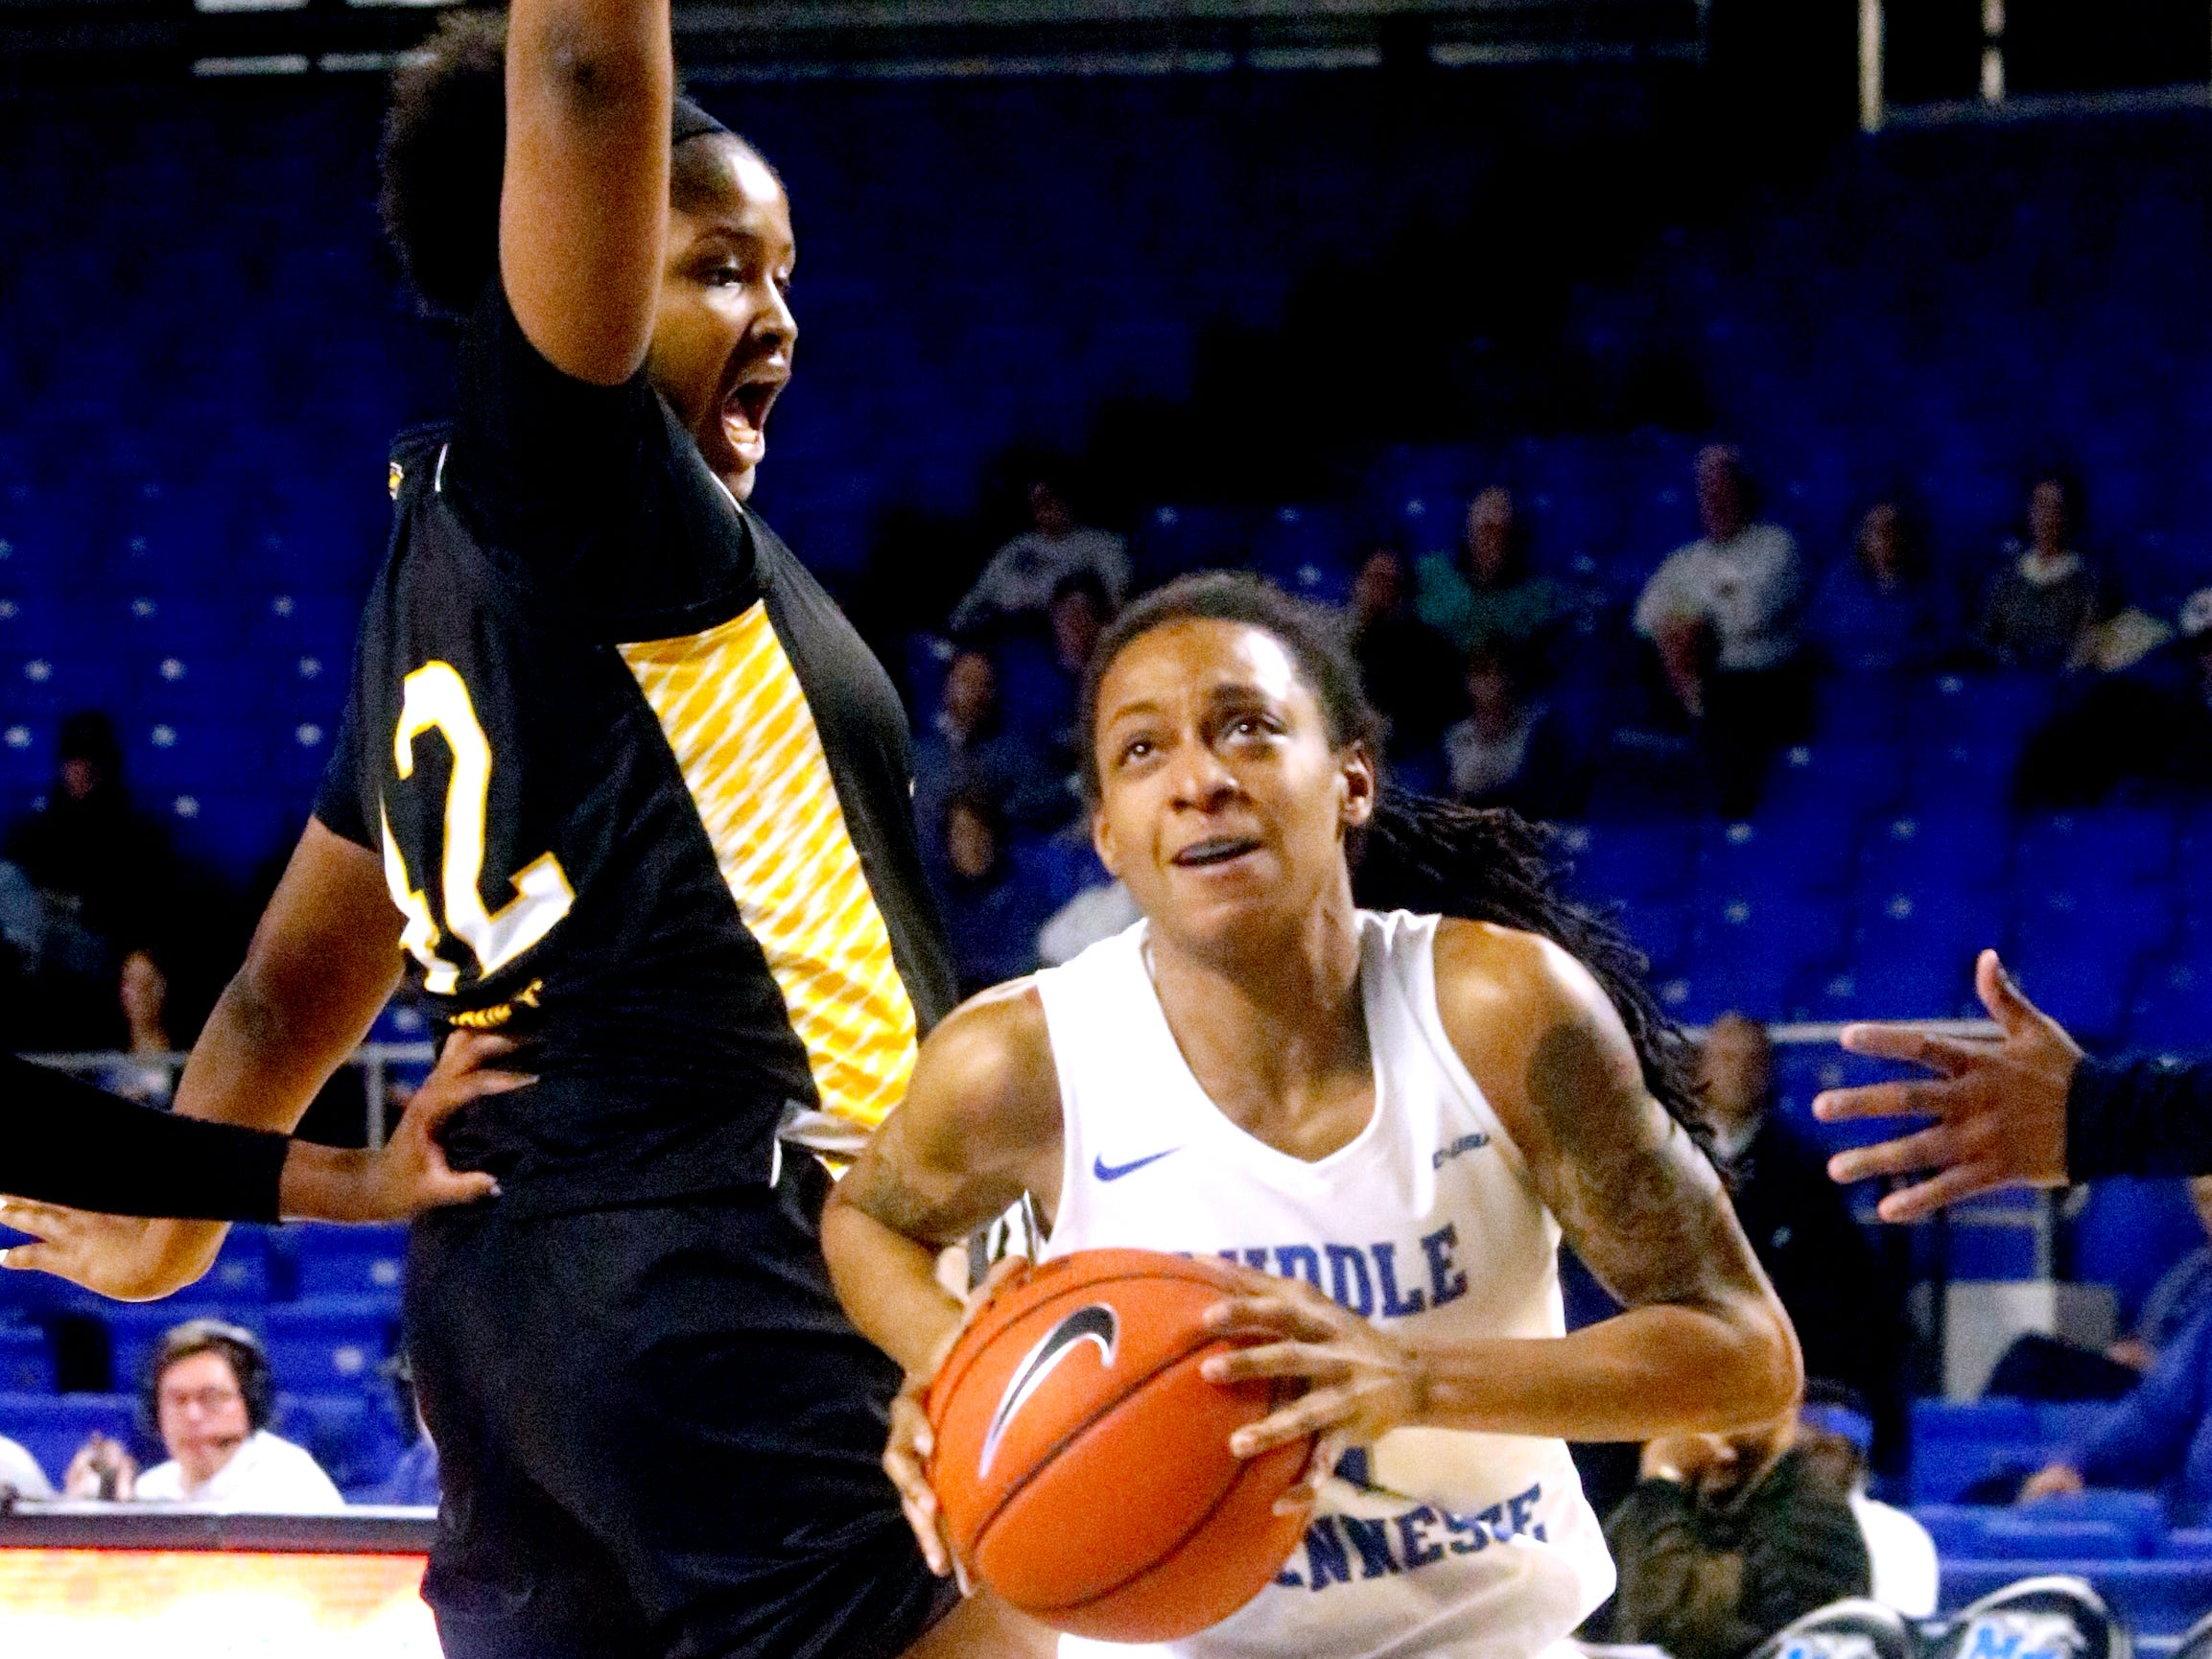 MTSU's guard A'Queen Hayes (1) goes up for a shot as Southern Miss' Kelsey Jones (42) guards her on Thursday Jan. 10, 2019.